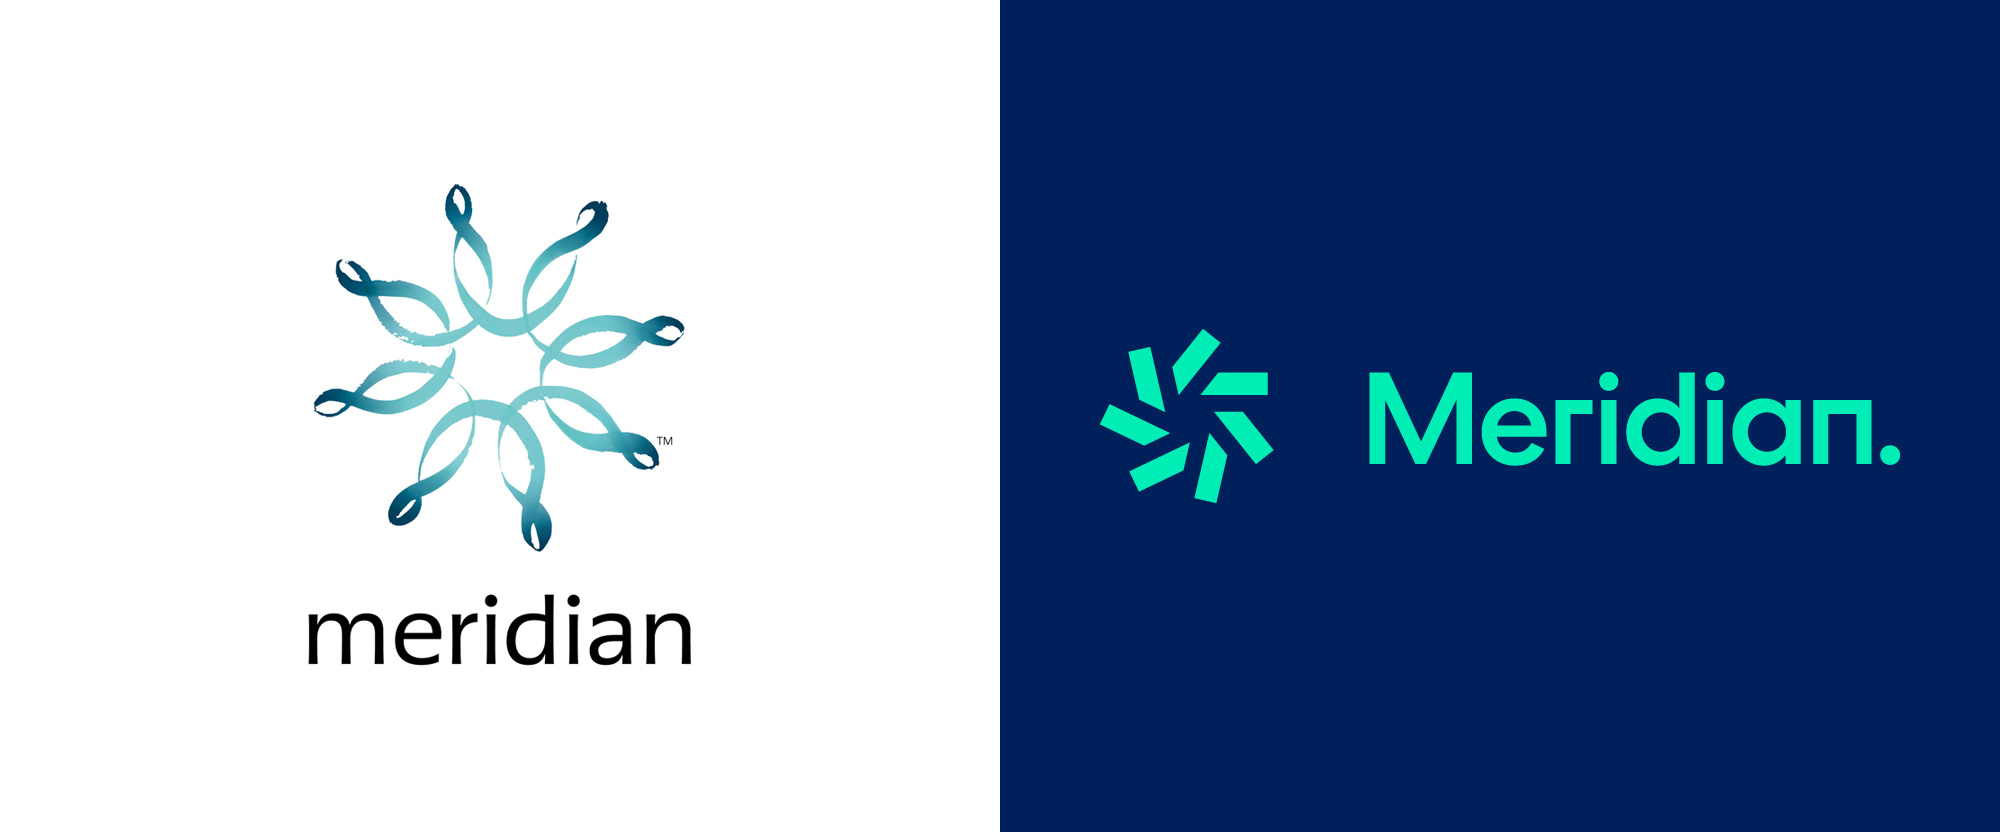 New Logo for Meridian by Inhouse